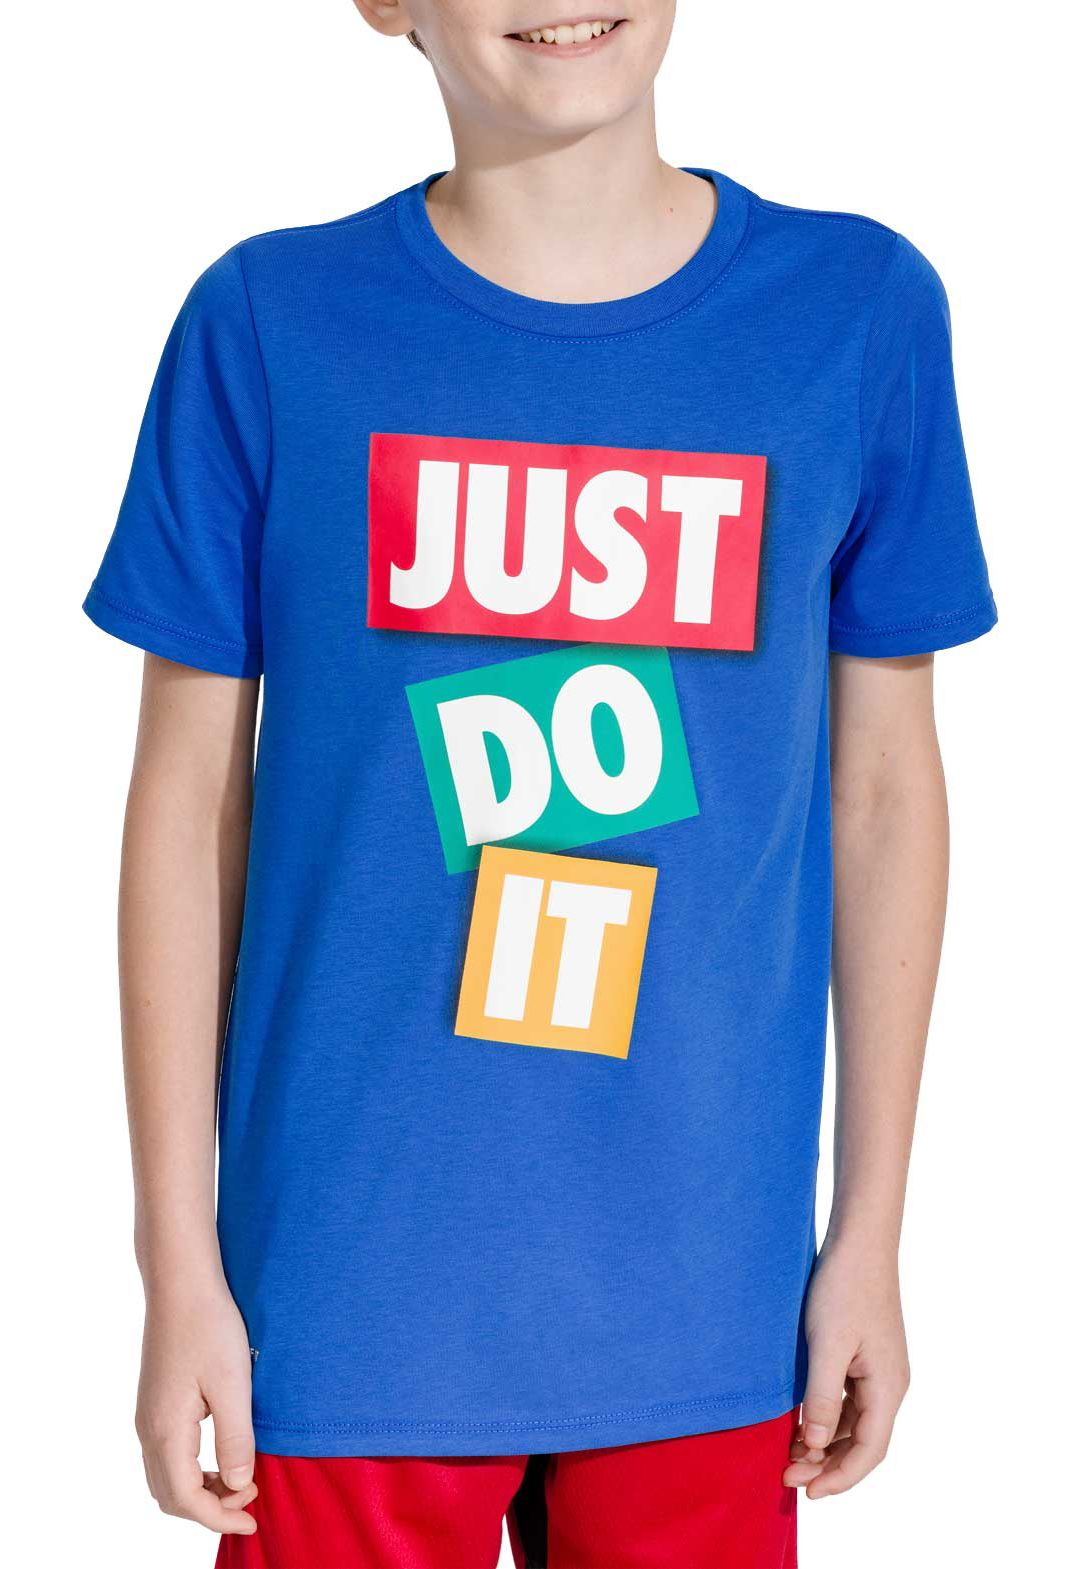 350c7c15b8866 Nike Boys' Dry Just Do It Tape Graphic Tee